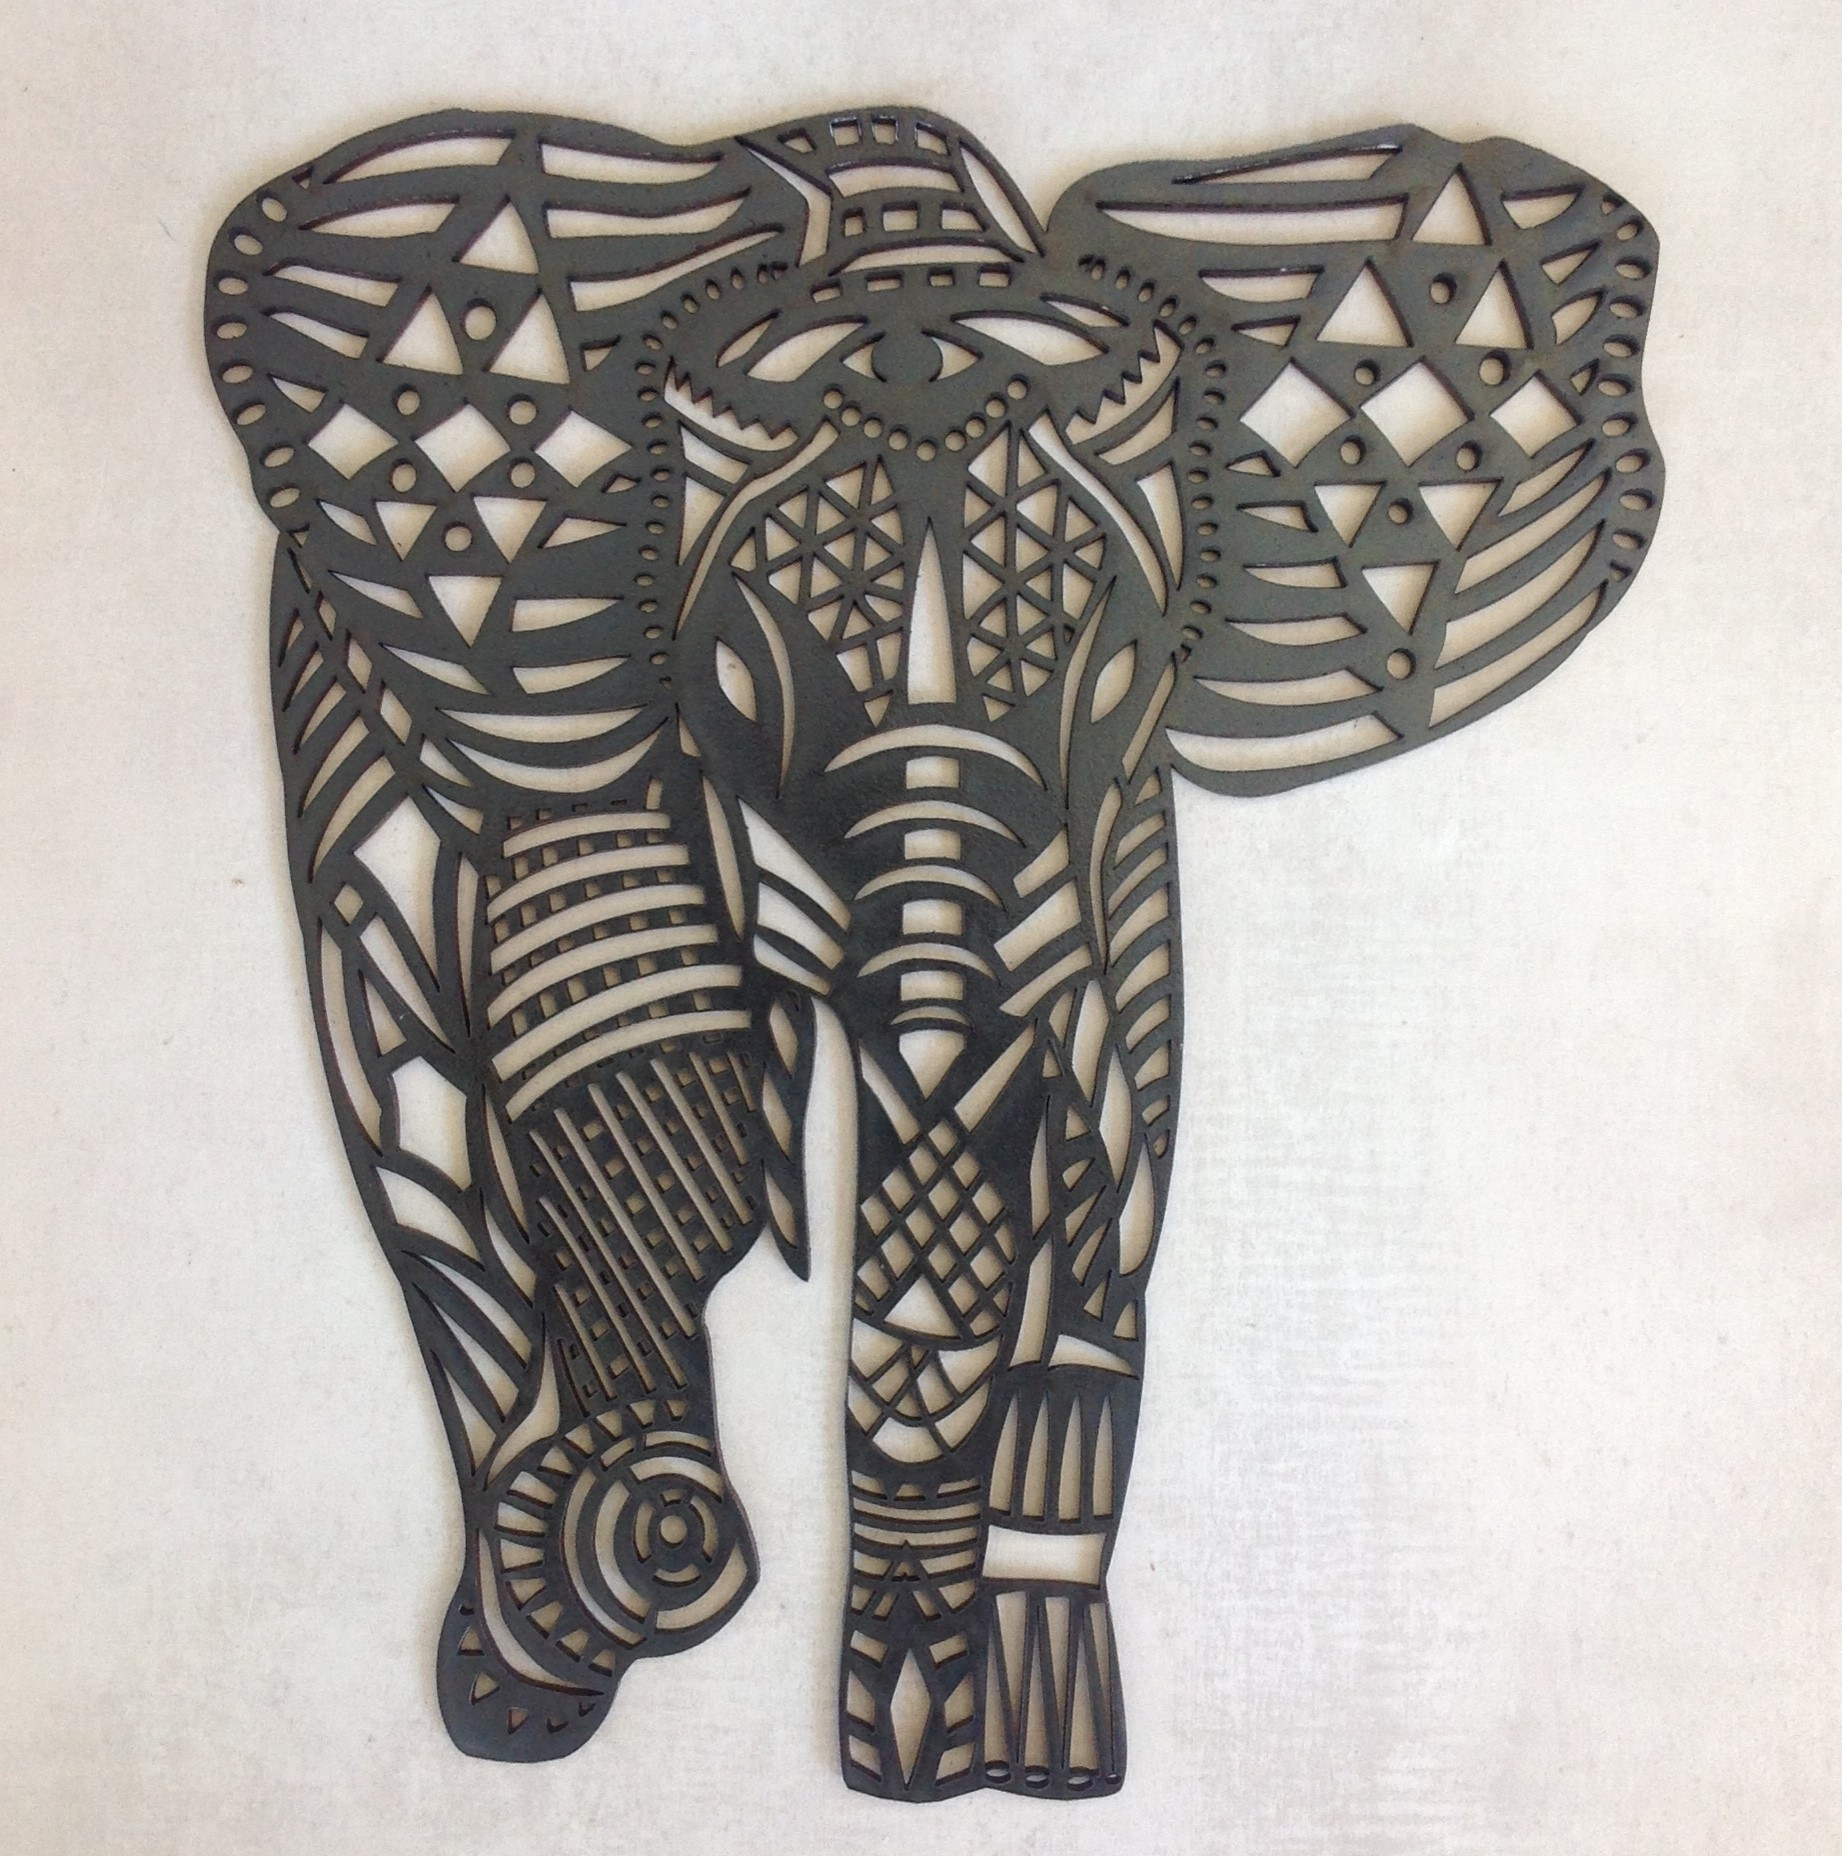 Let This Fancy Elephant Grace Your Wall! The Elephant Is A3 Size with regard to Best and Newest African Wall Accents